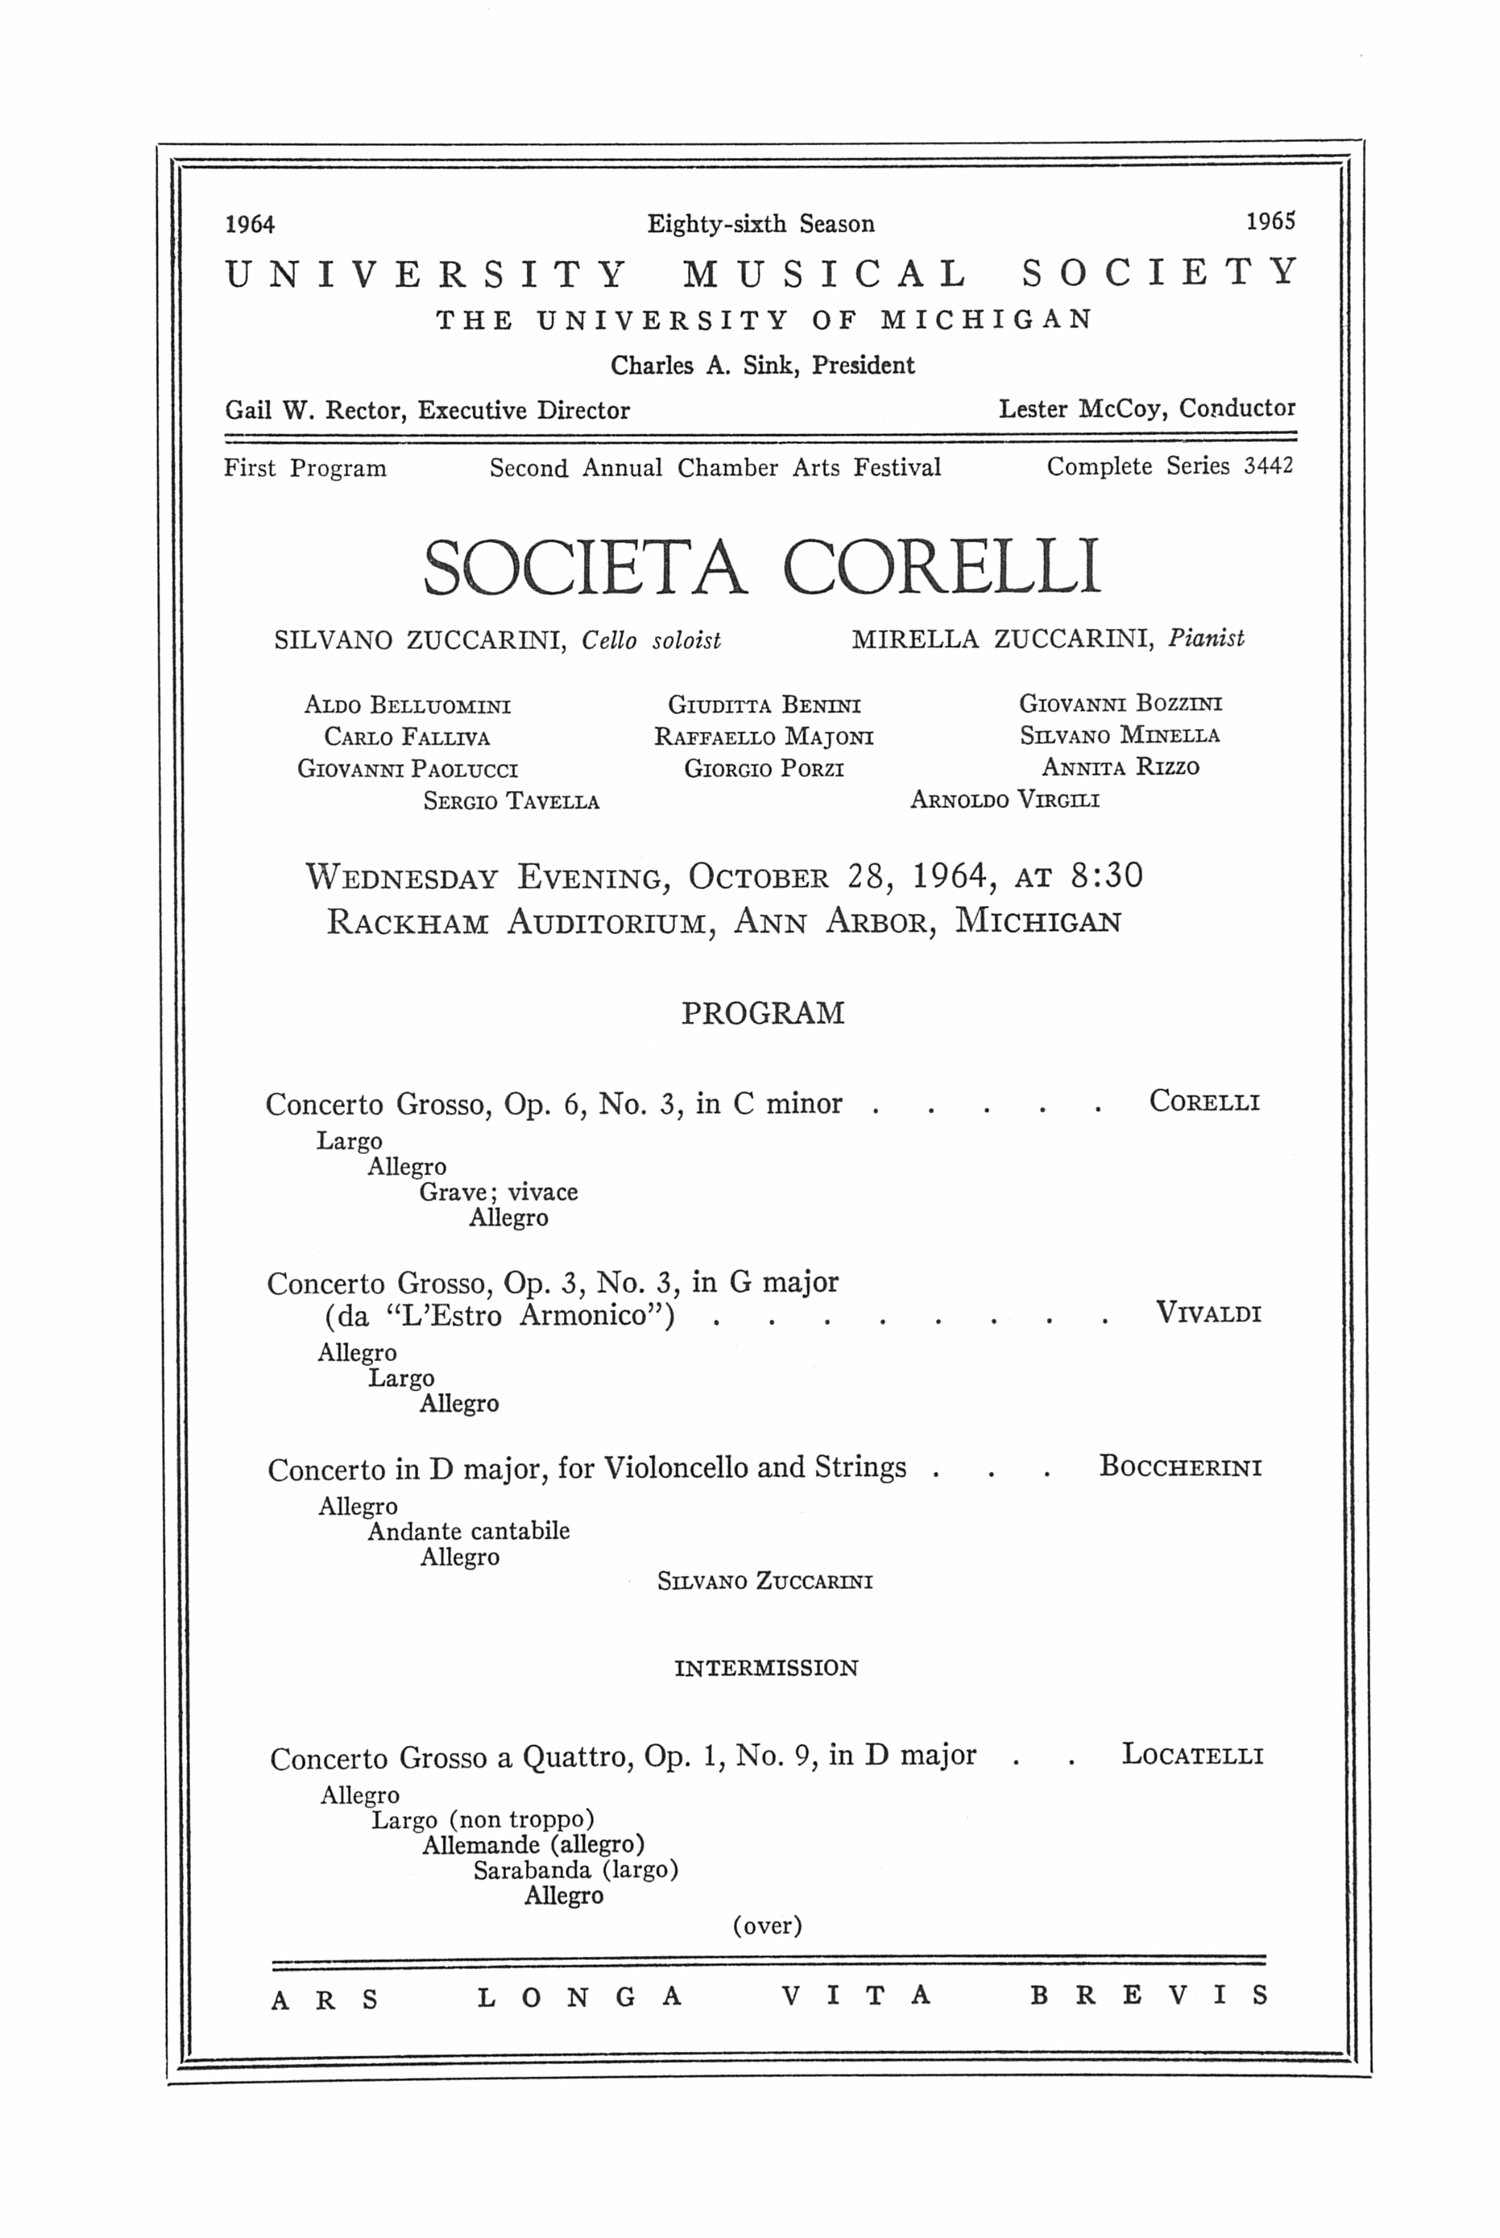 UMS Concert Program, October 28, 1964: Societa Corelli -- Silvano Zuccarini image